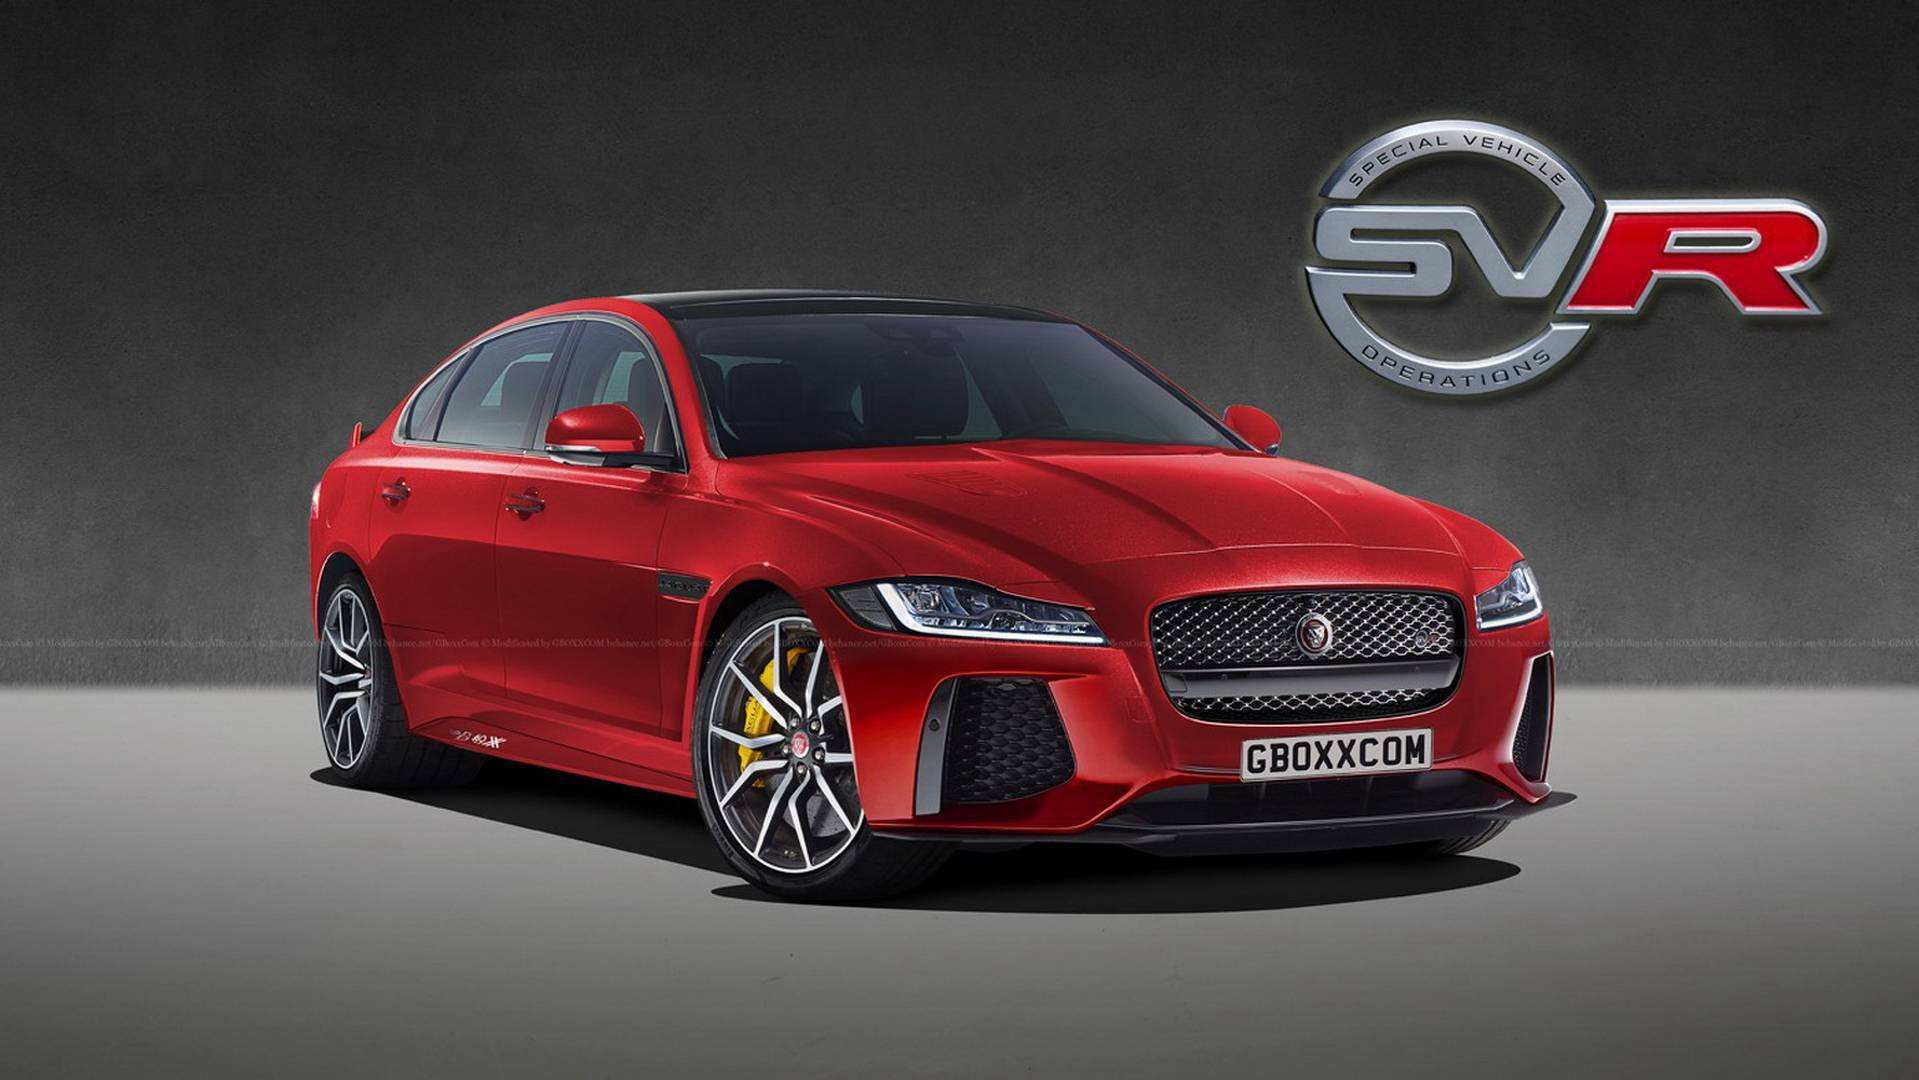 27 Gallery of Jaguar Xf 2020 Exterior for Jaguar Xf 2020